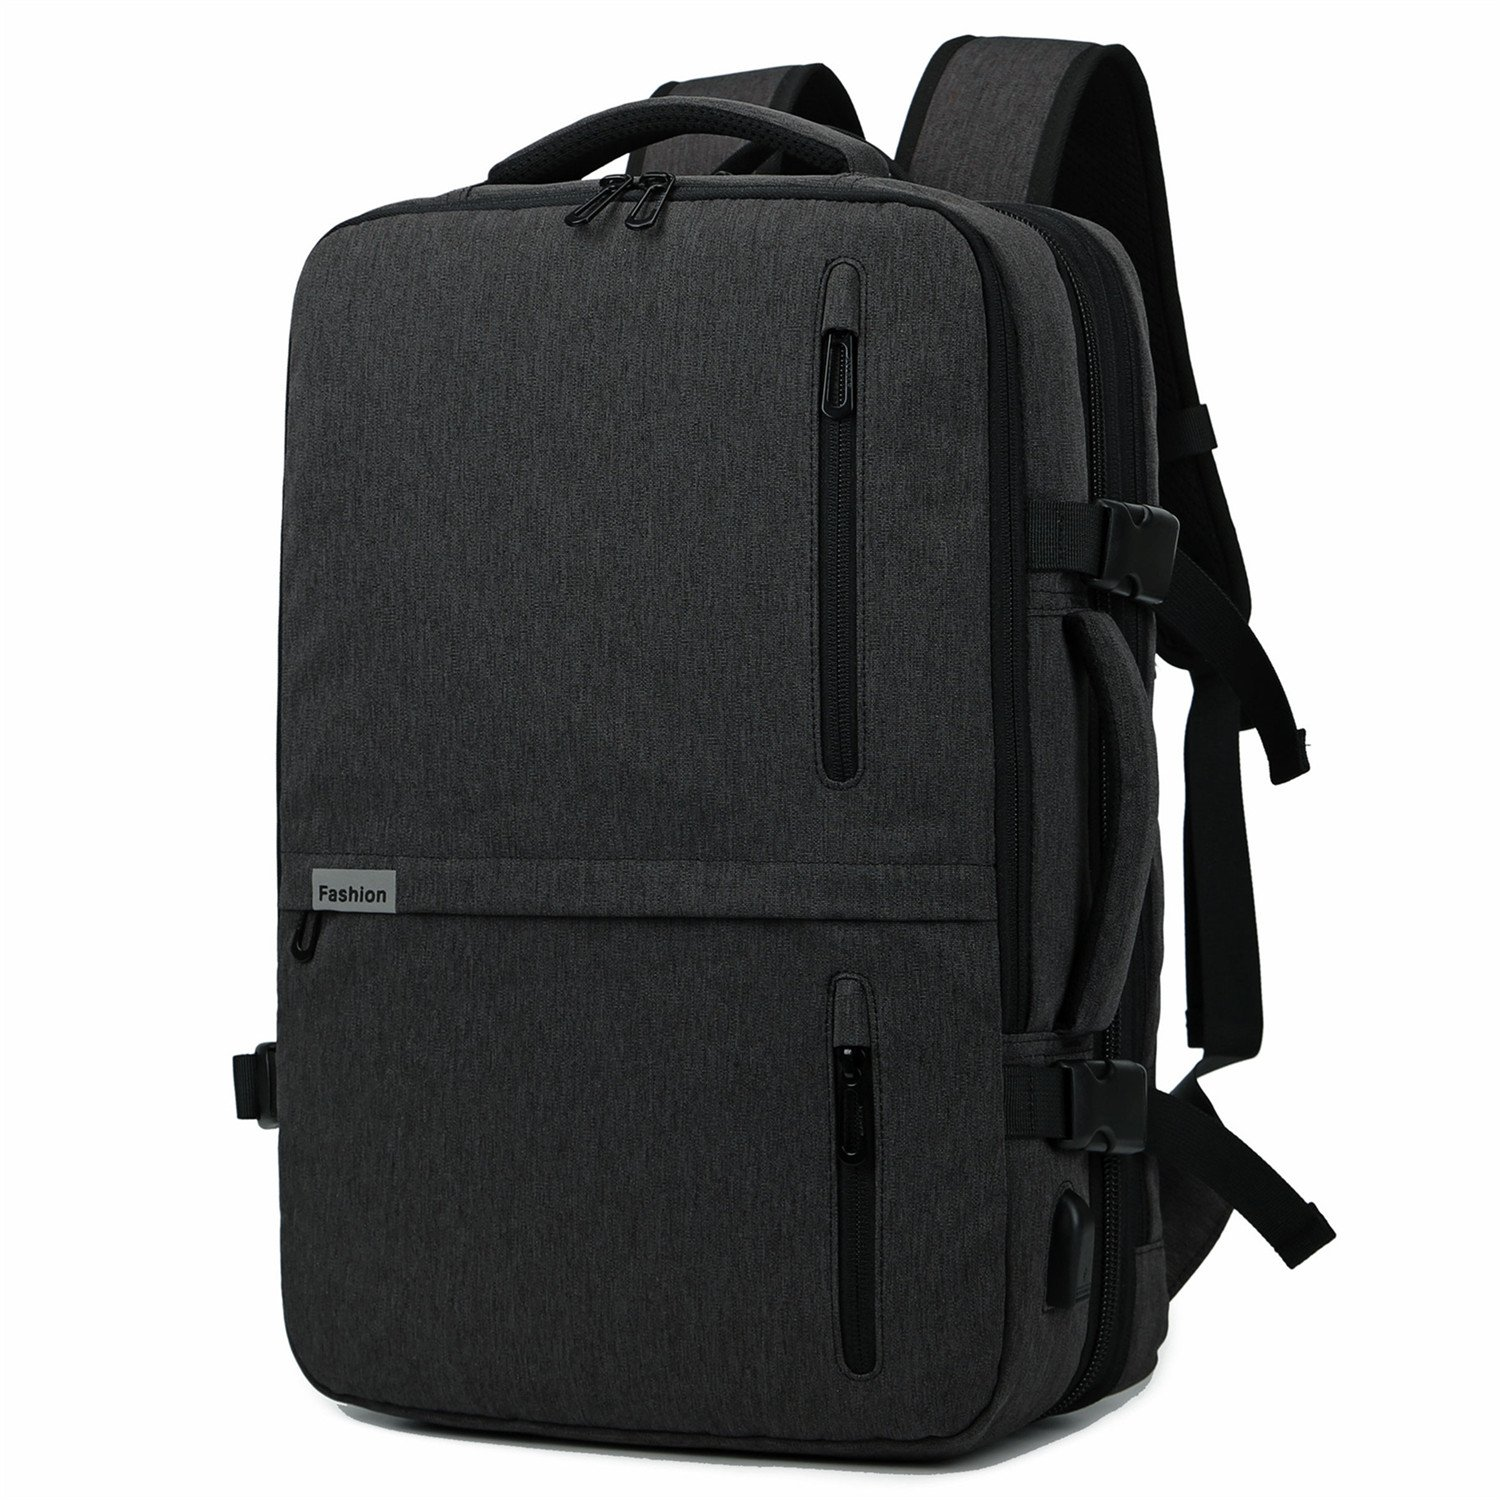 35L Expandable Carry On Laptop Backpack Weekender Overnight Trip Tote Bag with USB Charging Port Luggage Compartment Smart Organizer Flight Approved (Black)